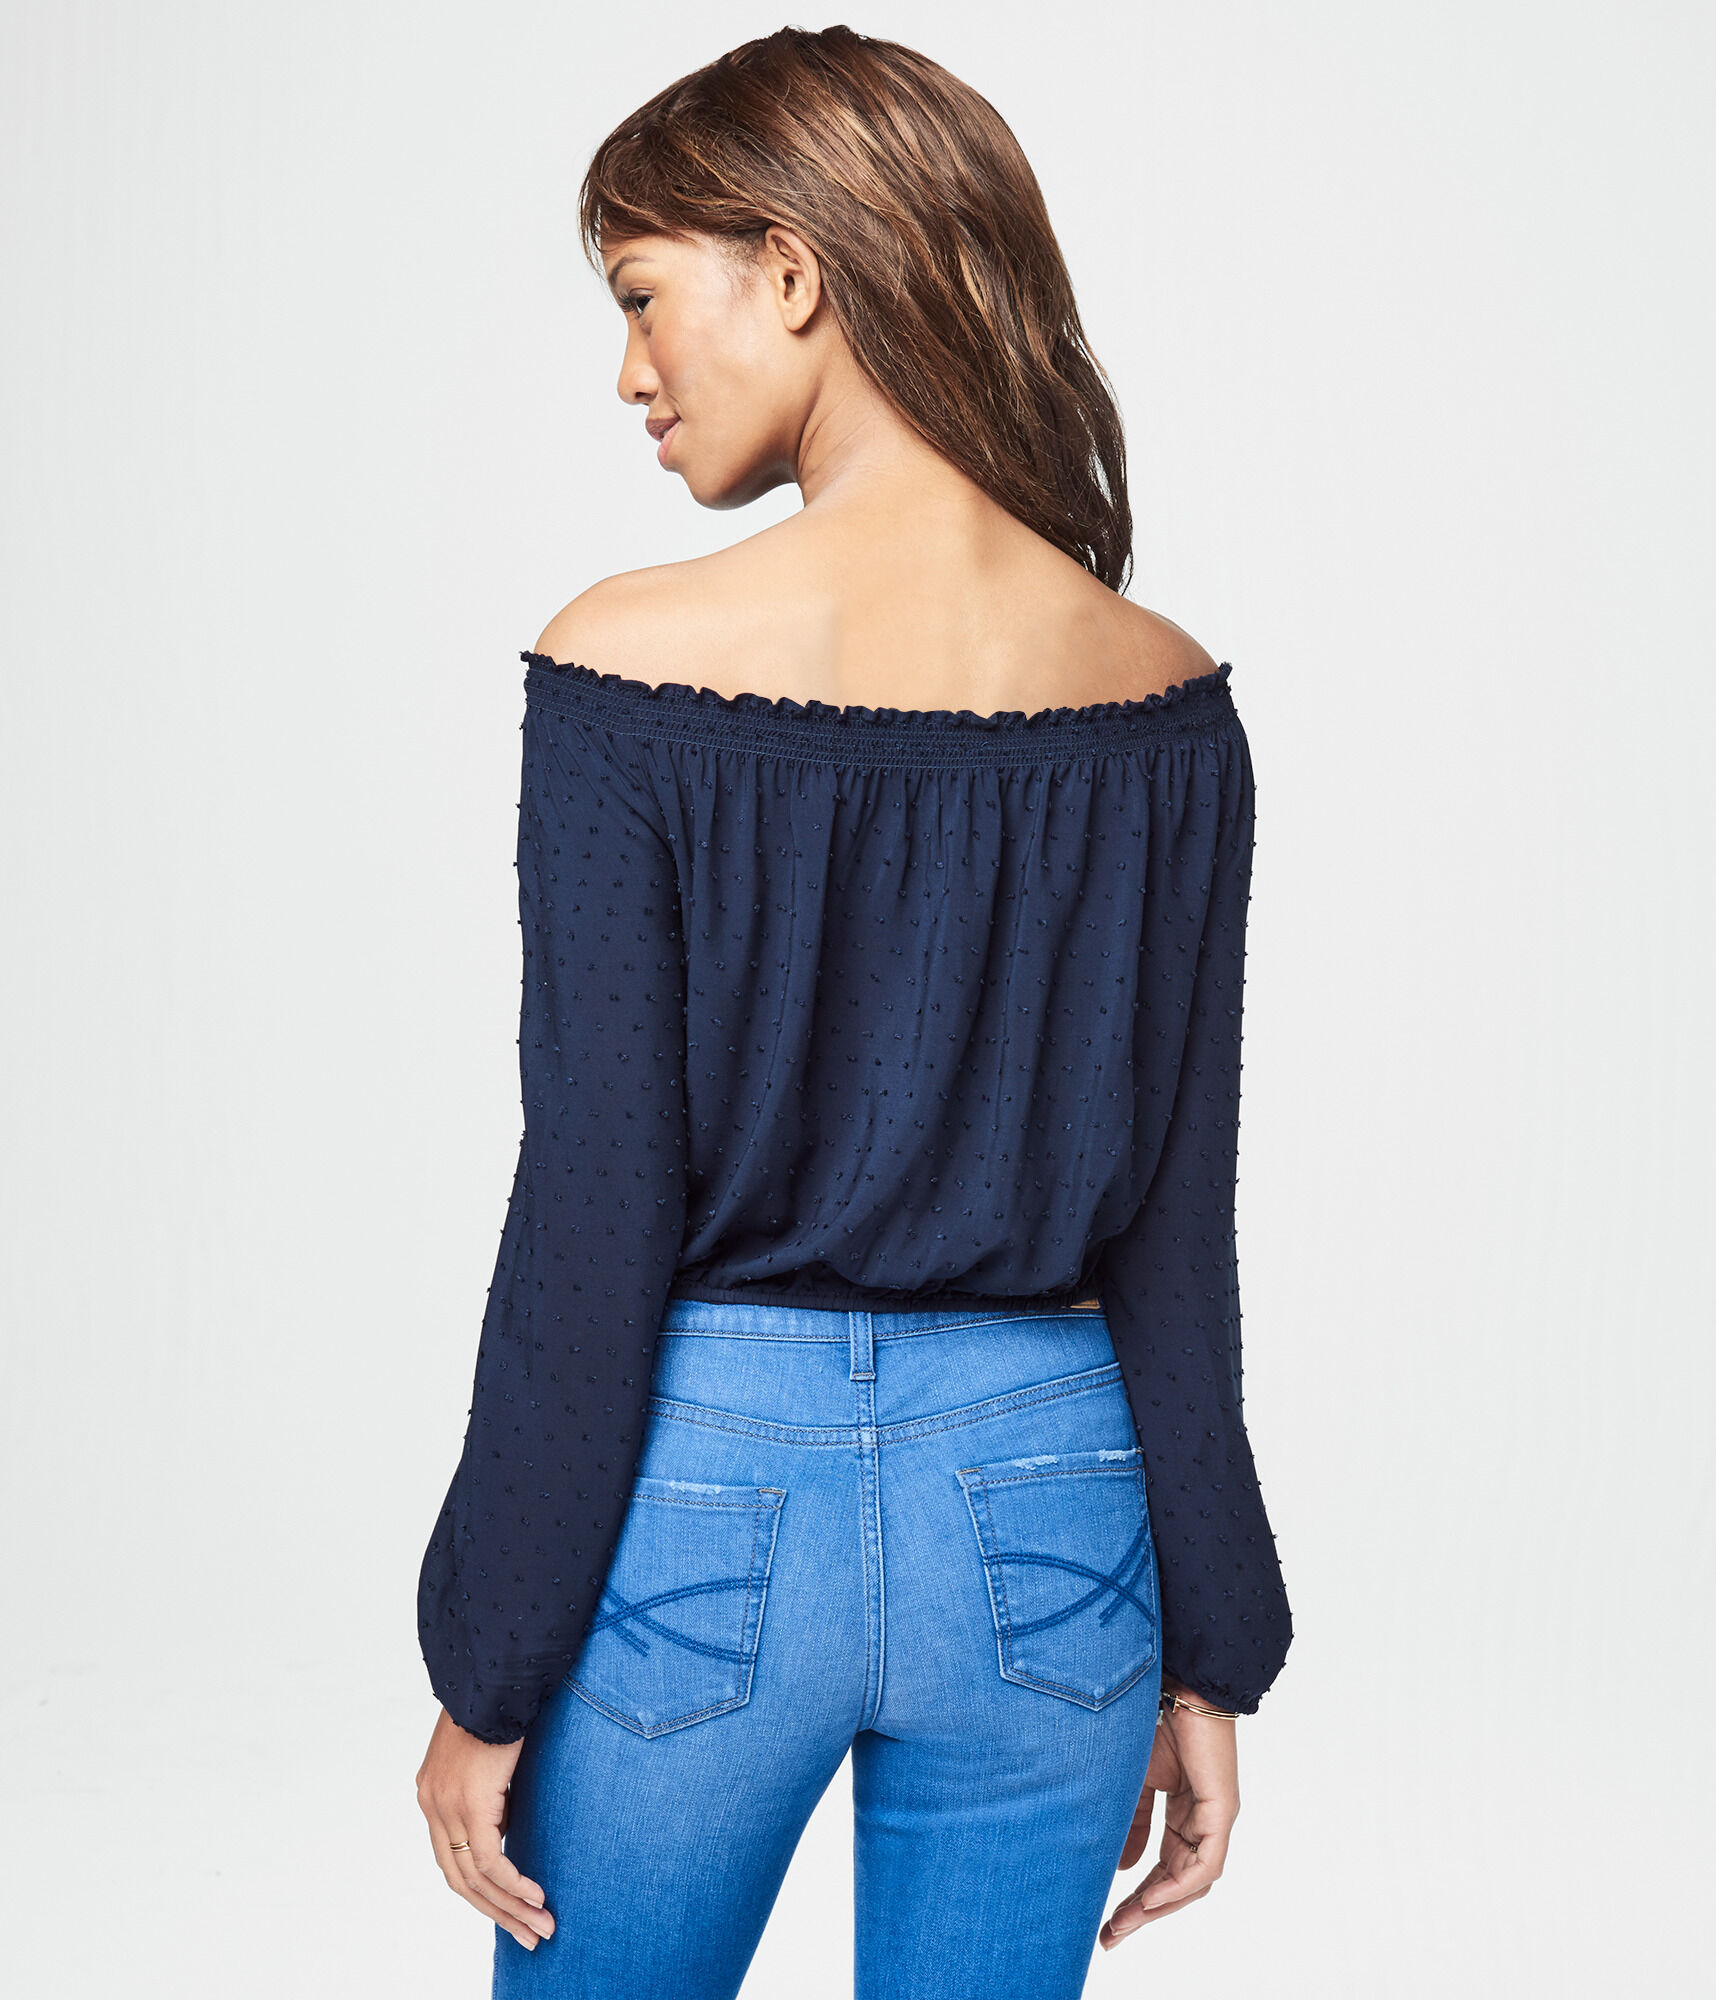 fa9a459ce7 Long Sleeve Off-The-Shoulder Crop Top   Aeropostale